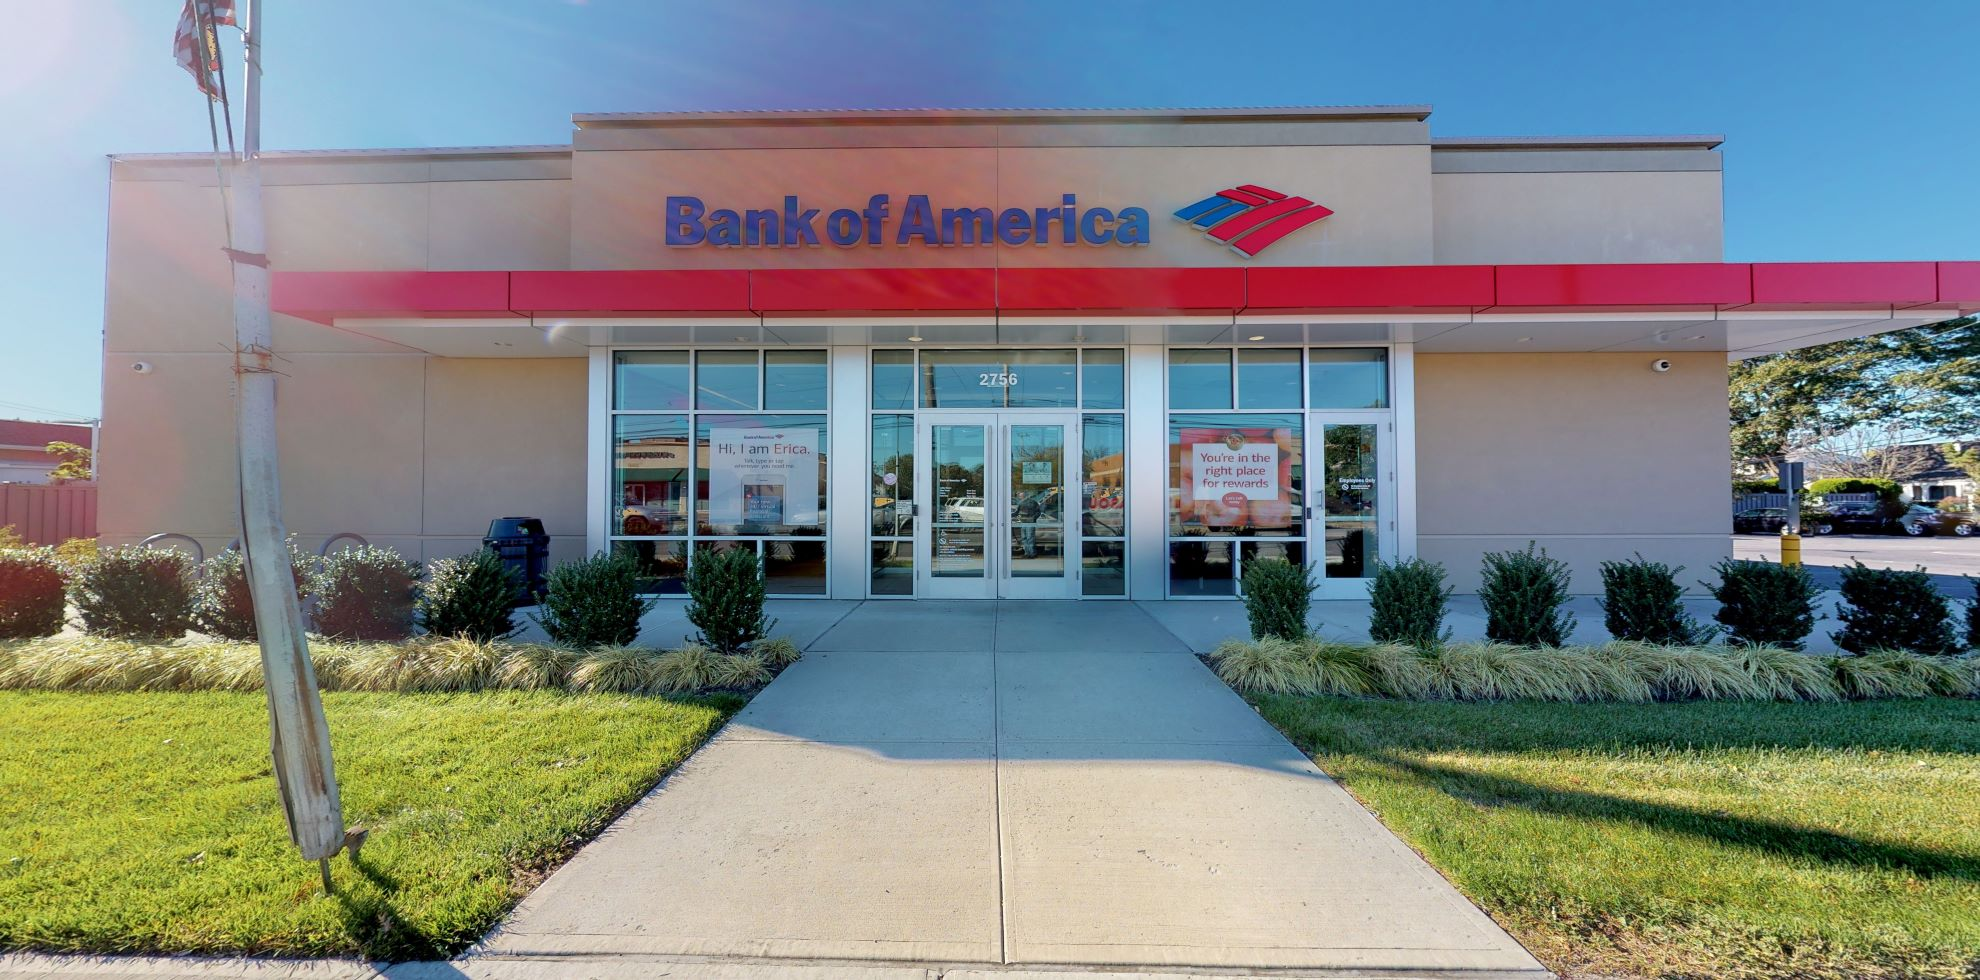 Bank of America financial center with drive-thru ATM | 2756 Long Beach Rd, Oceanside, NY 11572